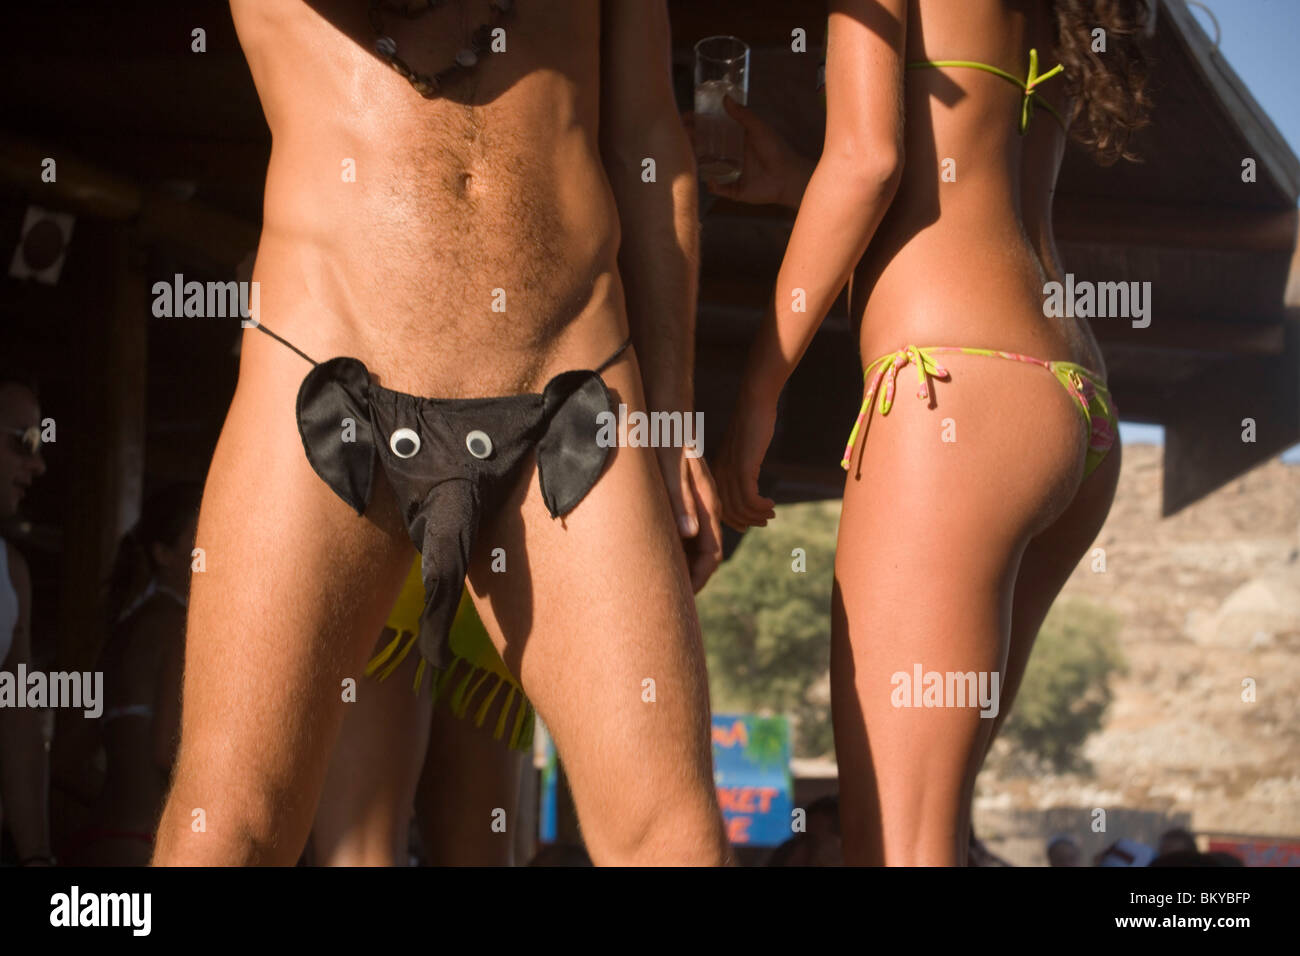 014635dd6746aa Man Thong Beach Stock Photos   Man Thong Beach Stock Images - Alamy